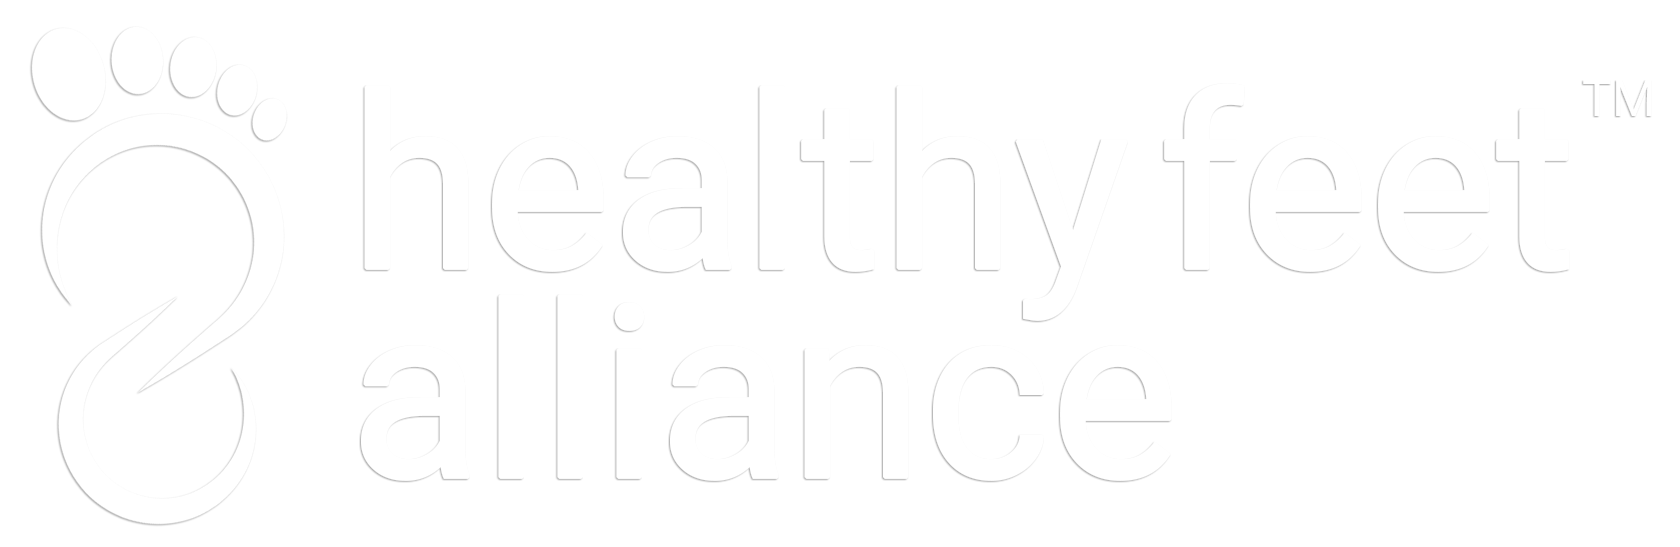 Healthy Feet Alliance